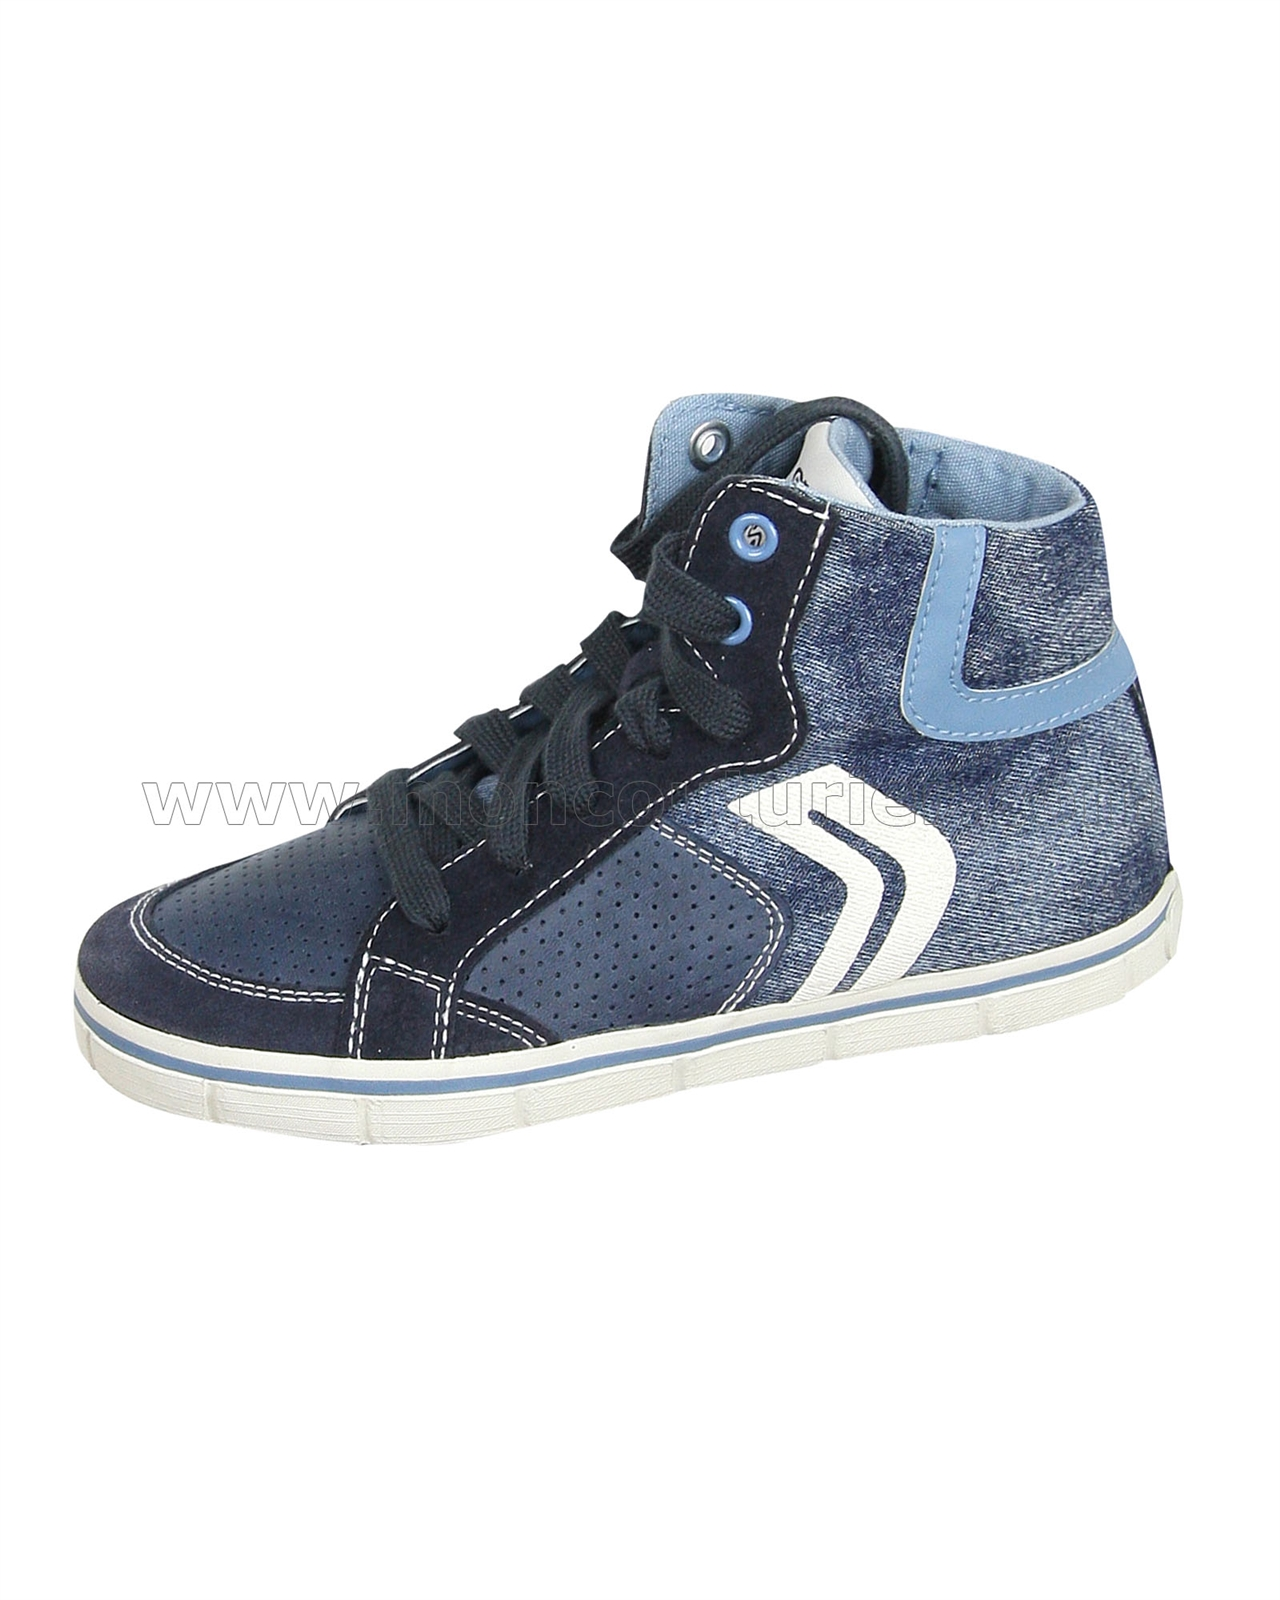 new concept good service official site GEOX Boys Hi-top Sneakers Jr Kiwi